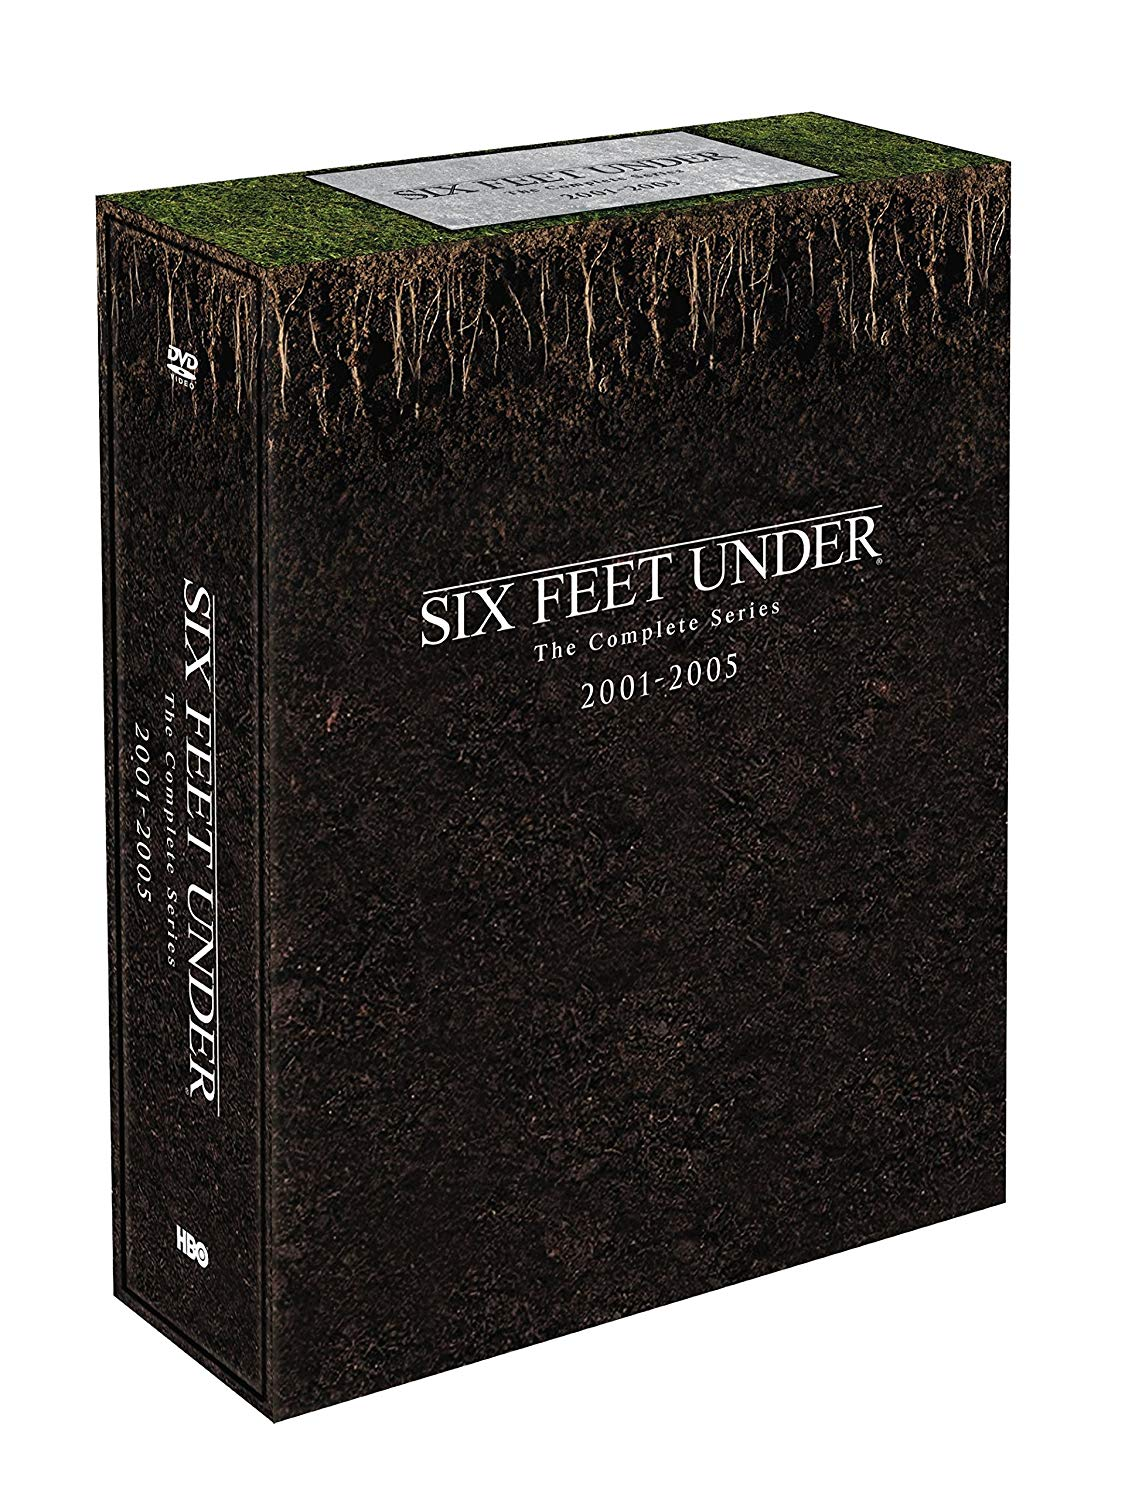 Tv Show cover: Six Feet Under